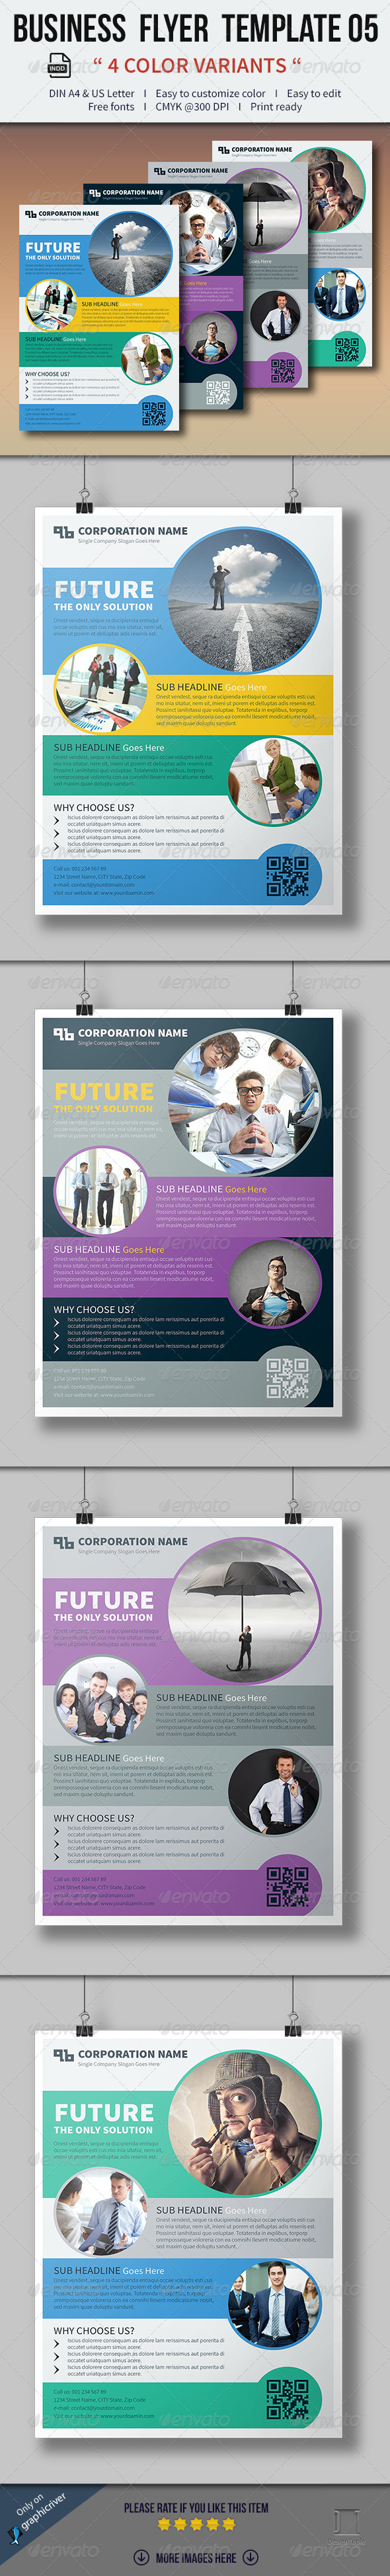 Business Flyer Template 05